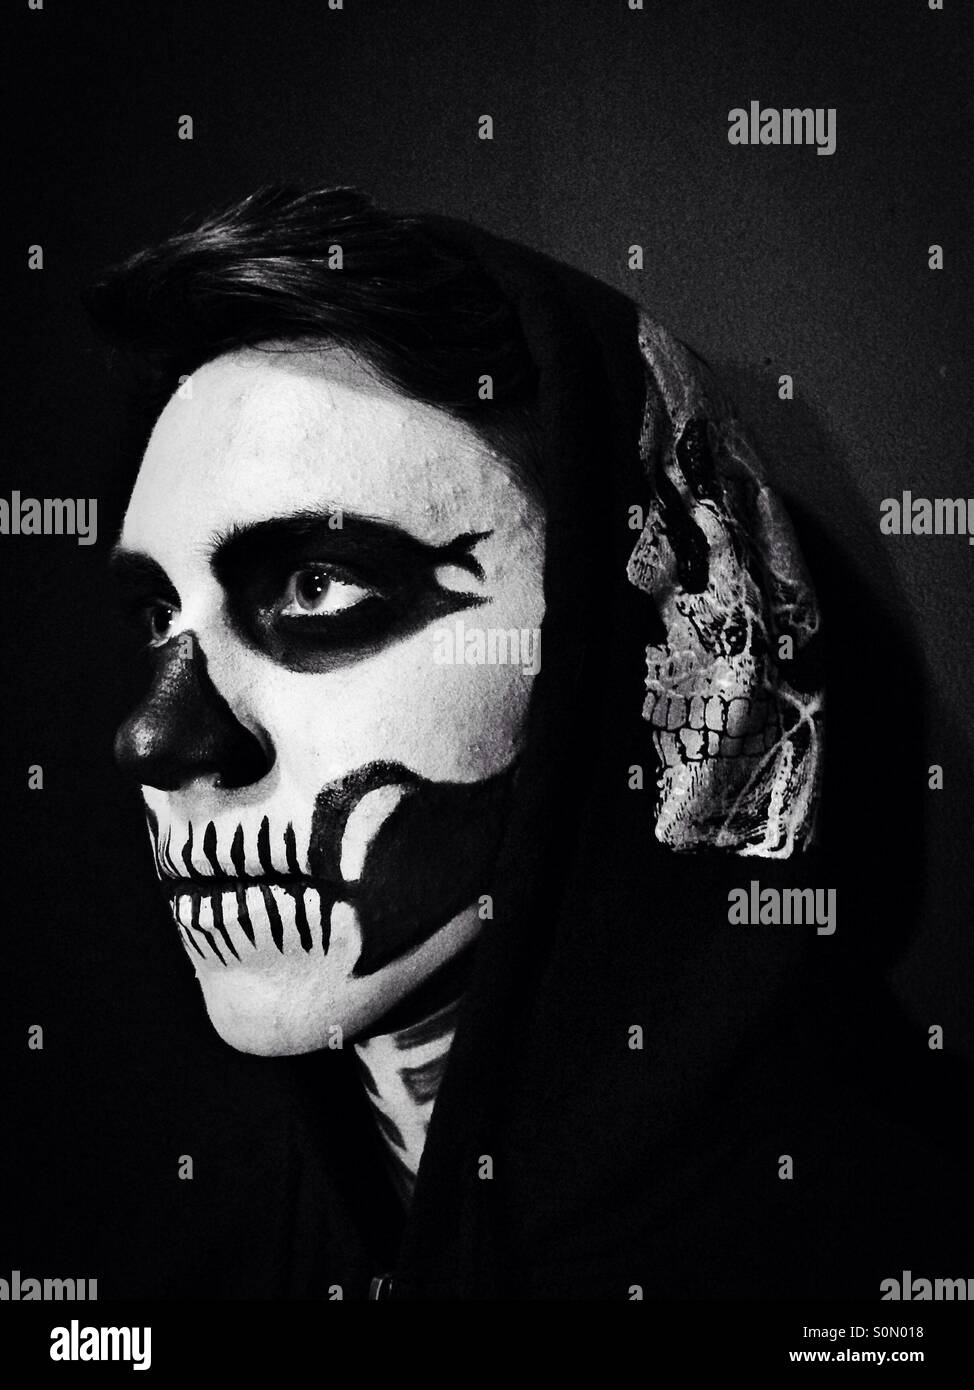 Close up of person with skeleton make-up. - Stock Image